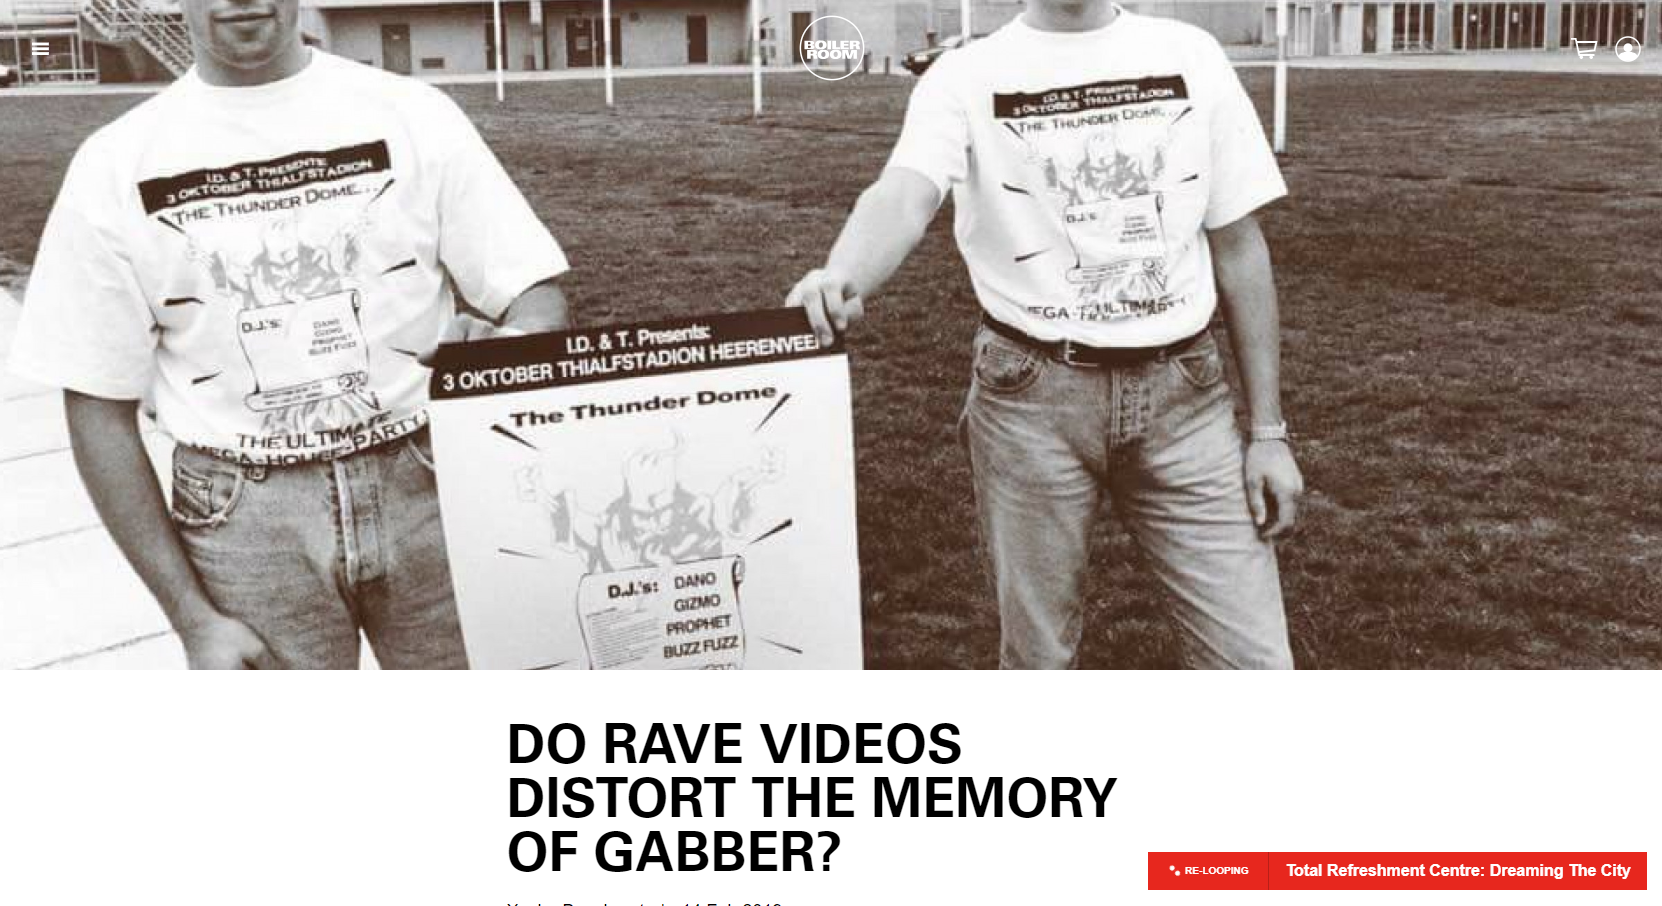 Do rave videos distort the memory of Gabber?